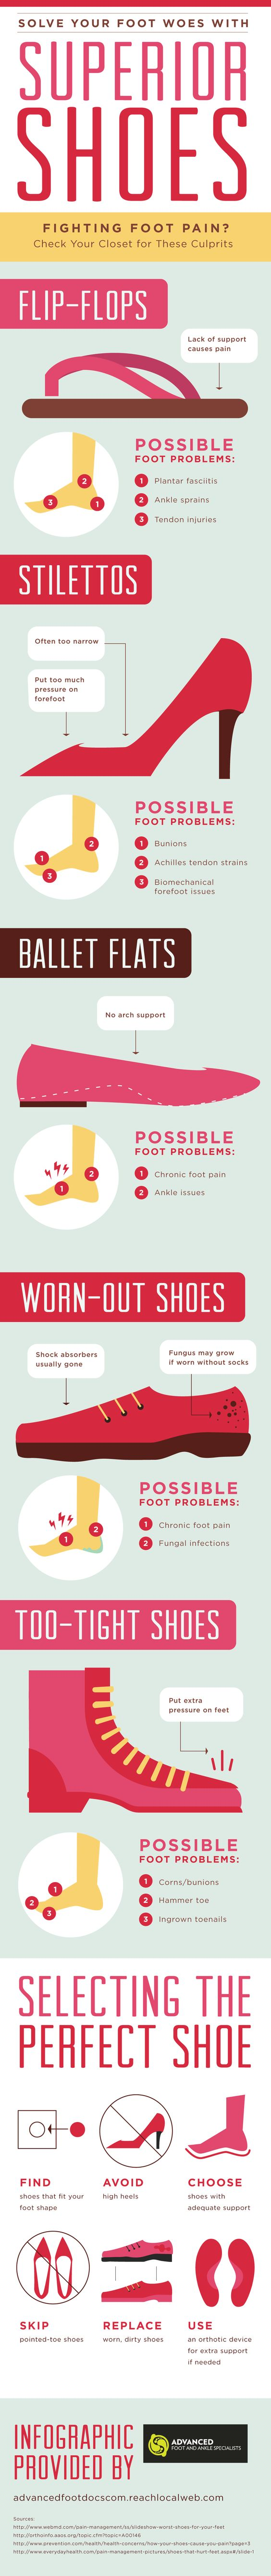 Solve Your Foot Woes with Superior Shoes #infographic: